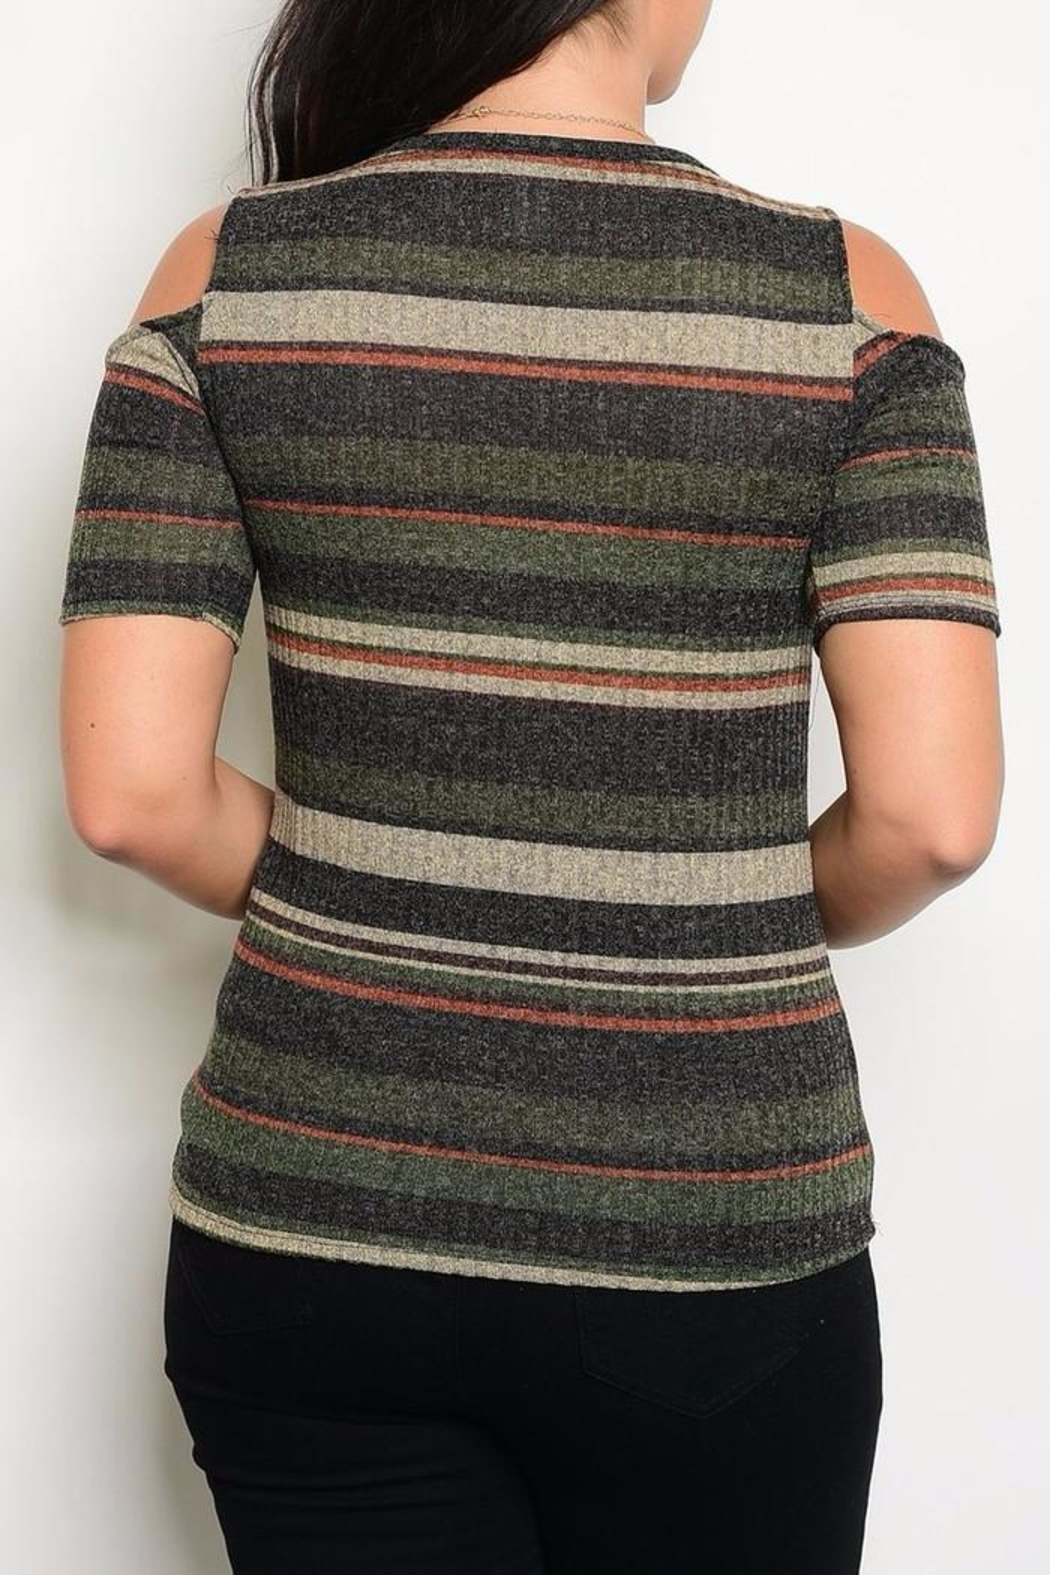 Zenobia Charcoal Shoulder Sweater - Front Full Image